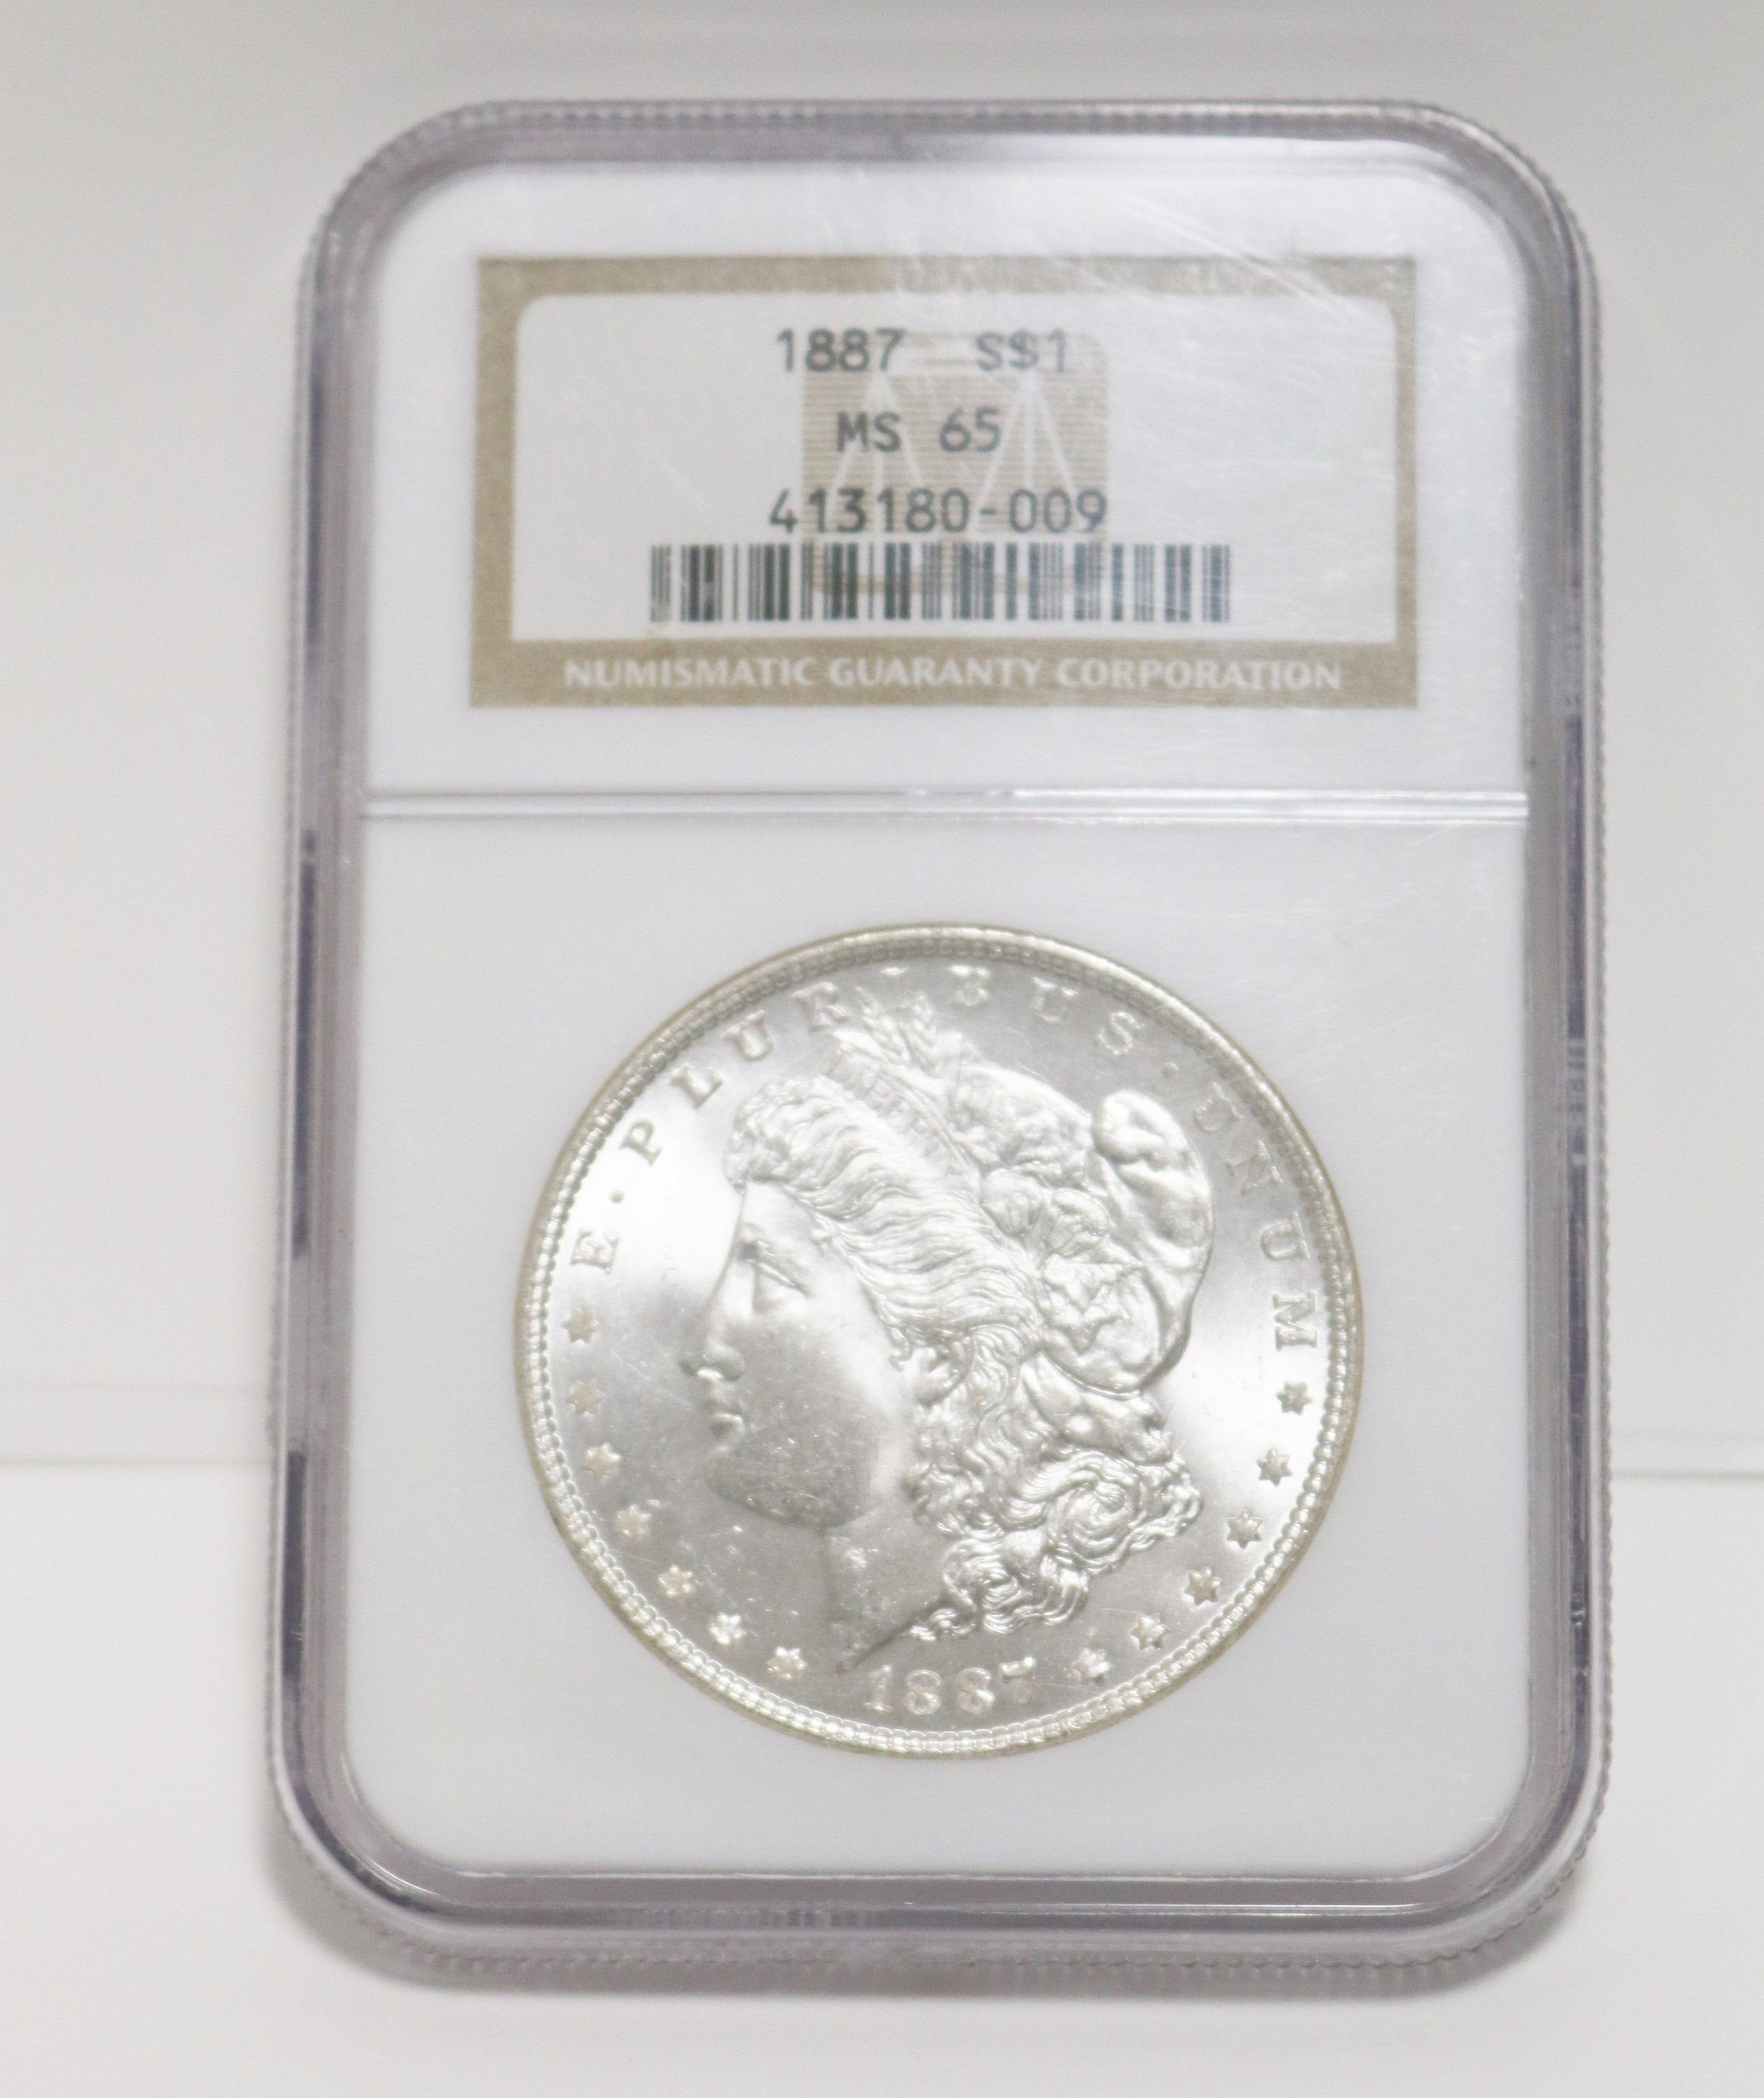 1887 Us Mint Morgan Silver 1 One Dollar Coin Uncirculated Ngc Etsy In 2020 Coins For Sale Silver Bullion Gold Bullion